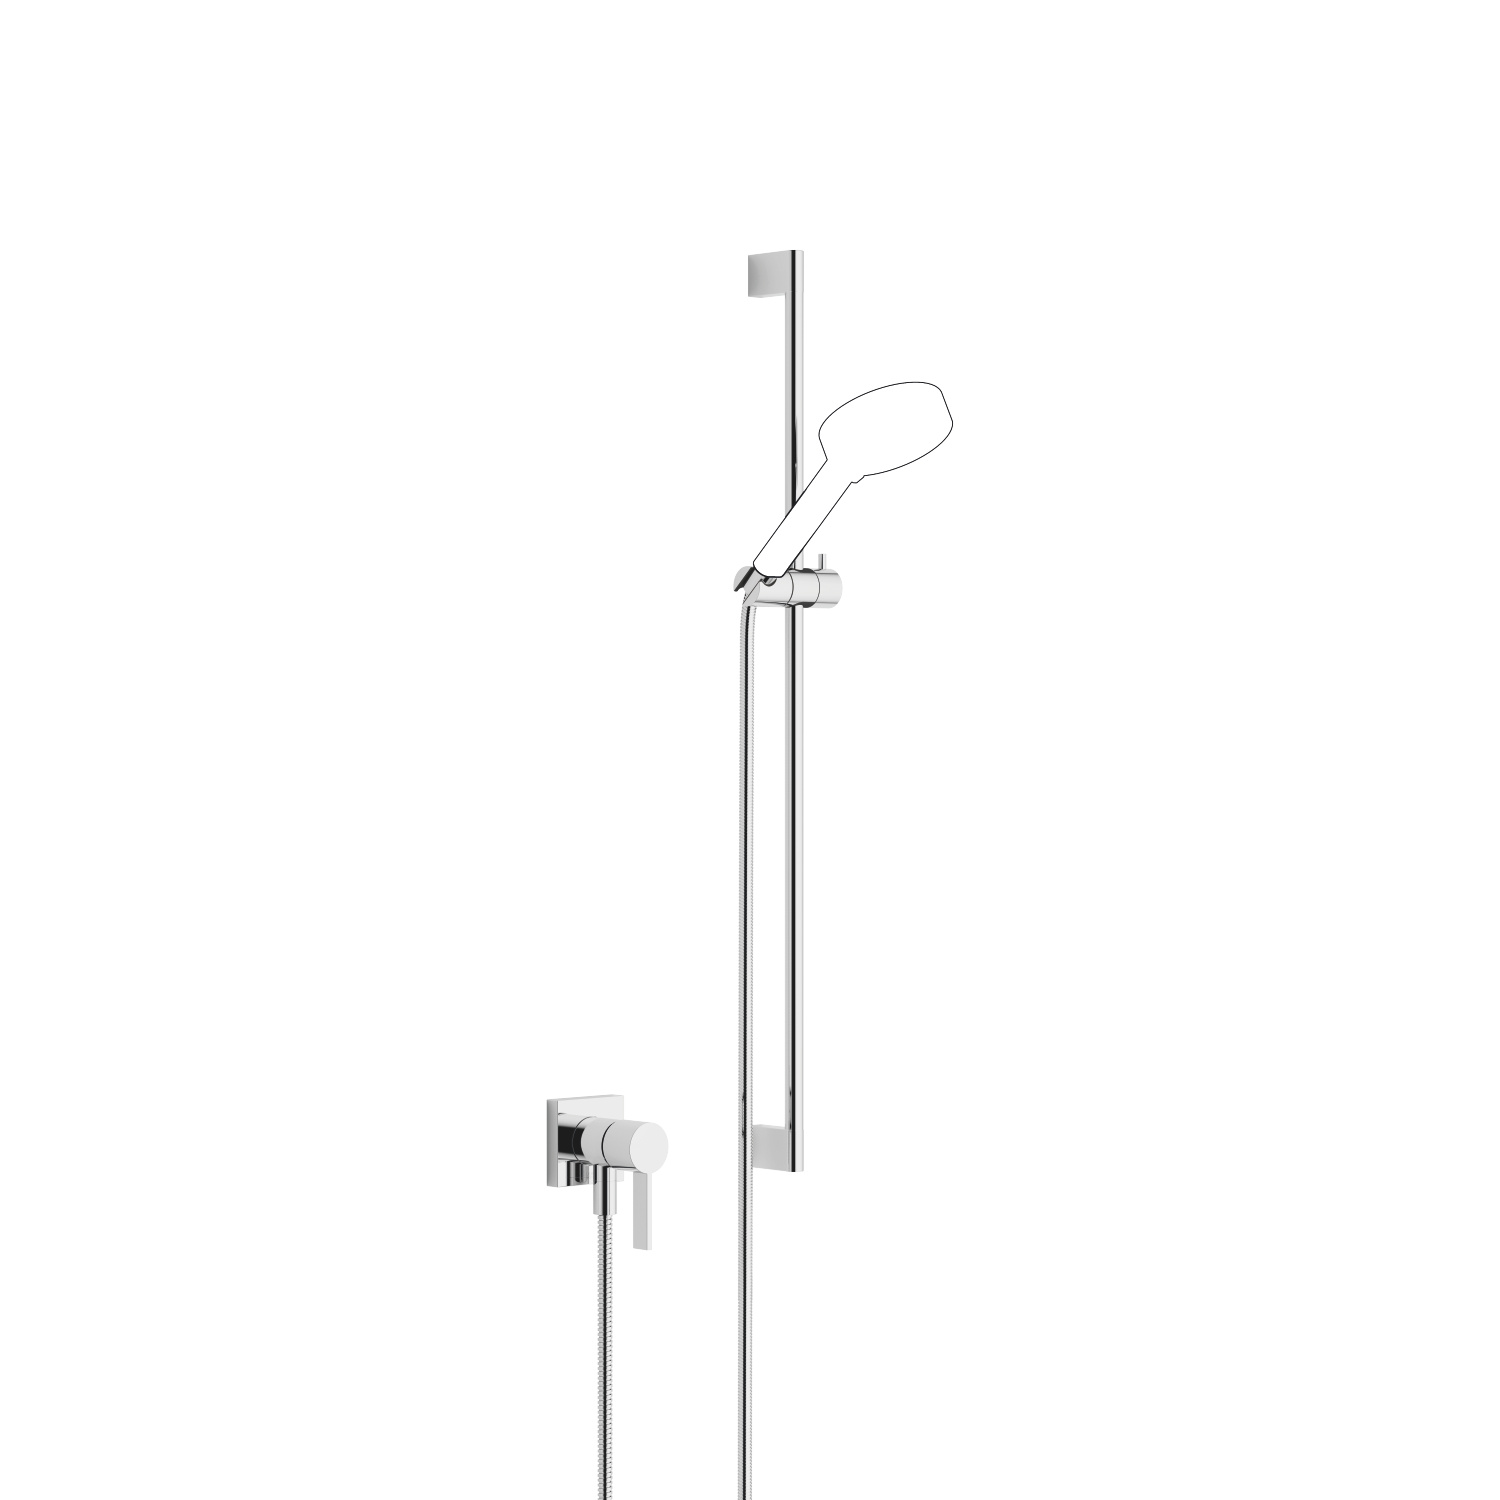 Concealed single-lever mixer with integrated shower connection with shower set without hand shower - polished chrome